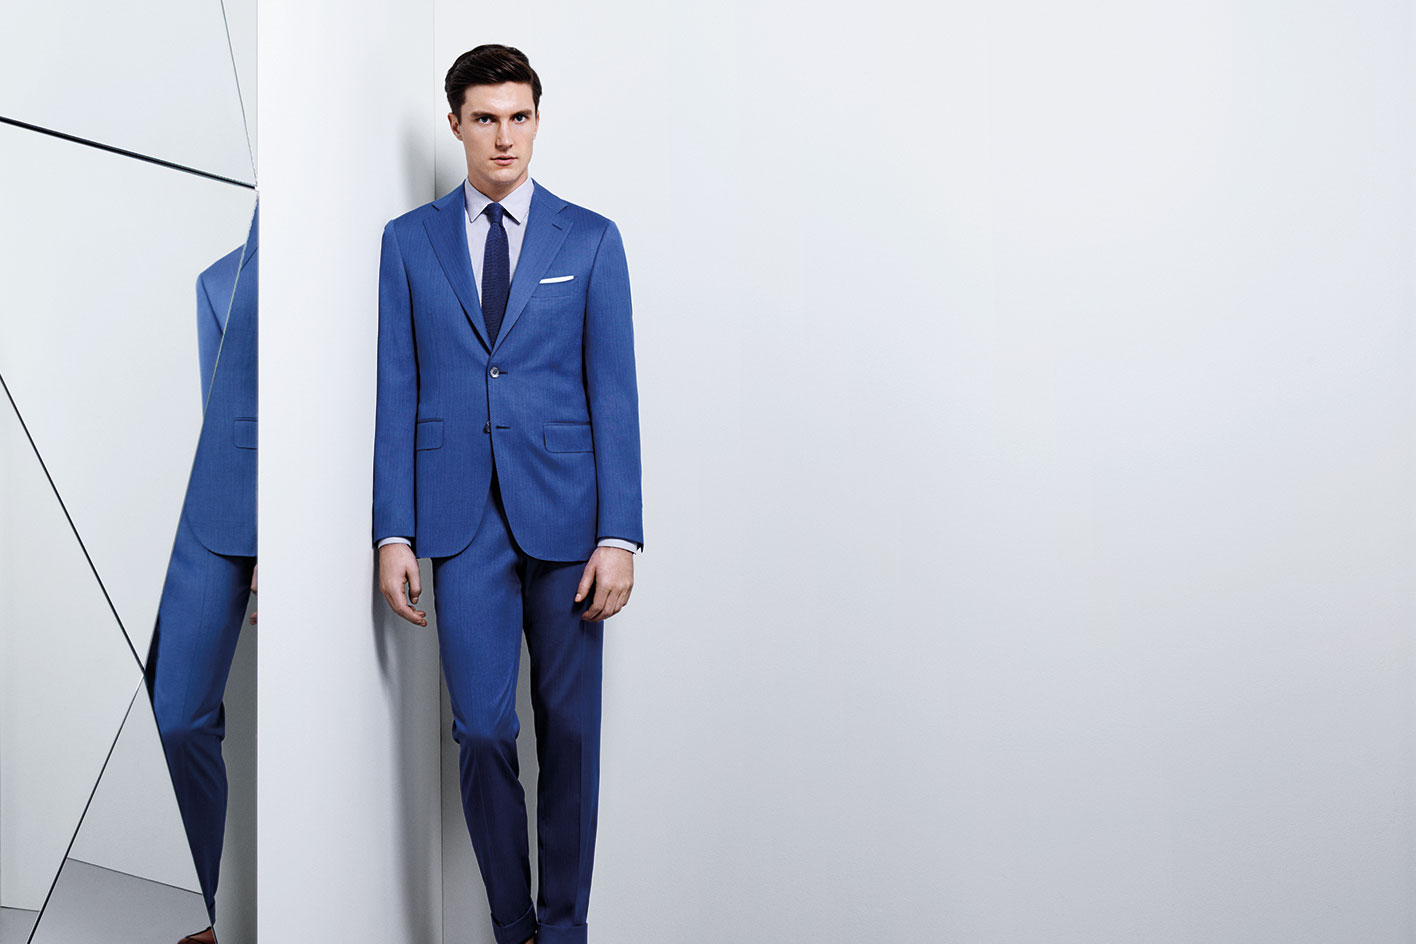 Canali Suits Spotlight: A Tailor's Review